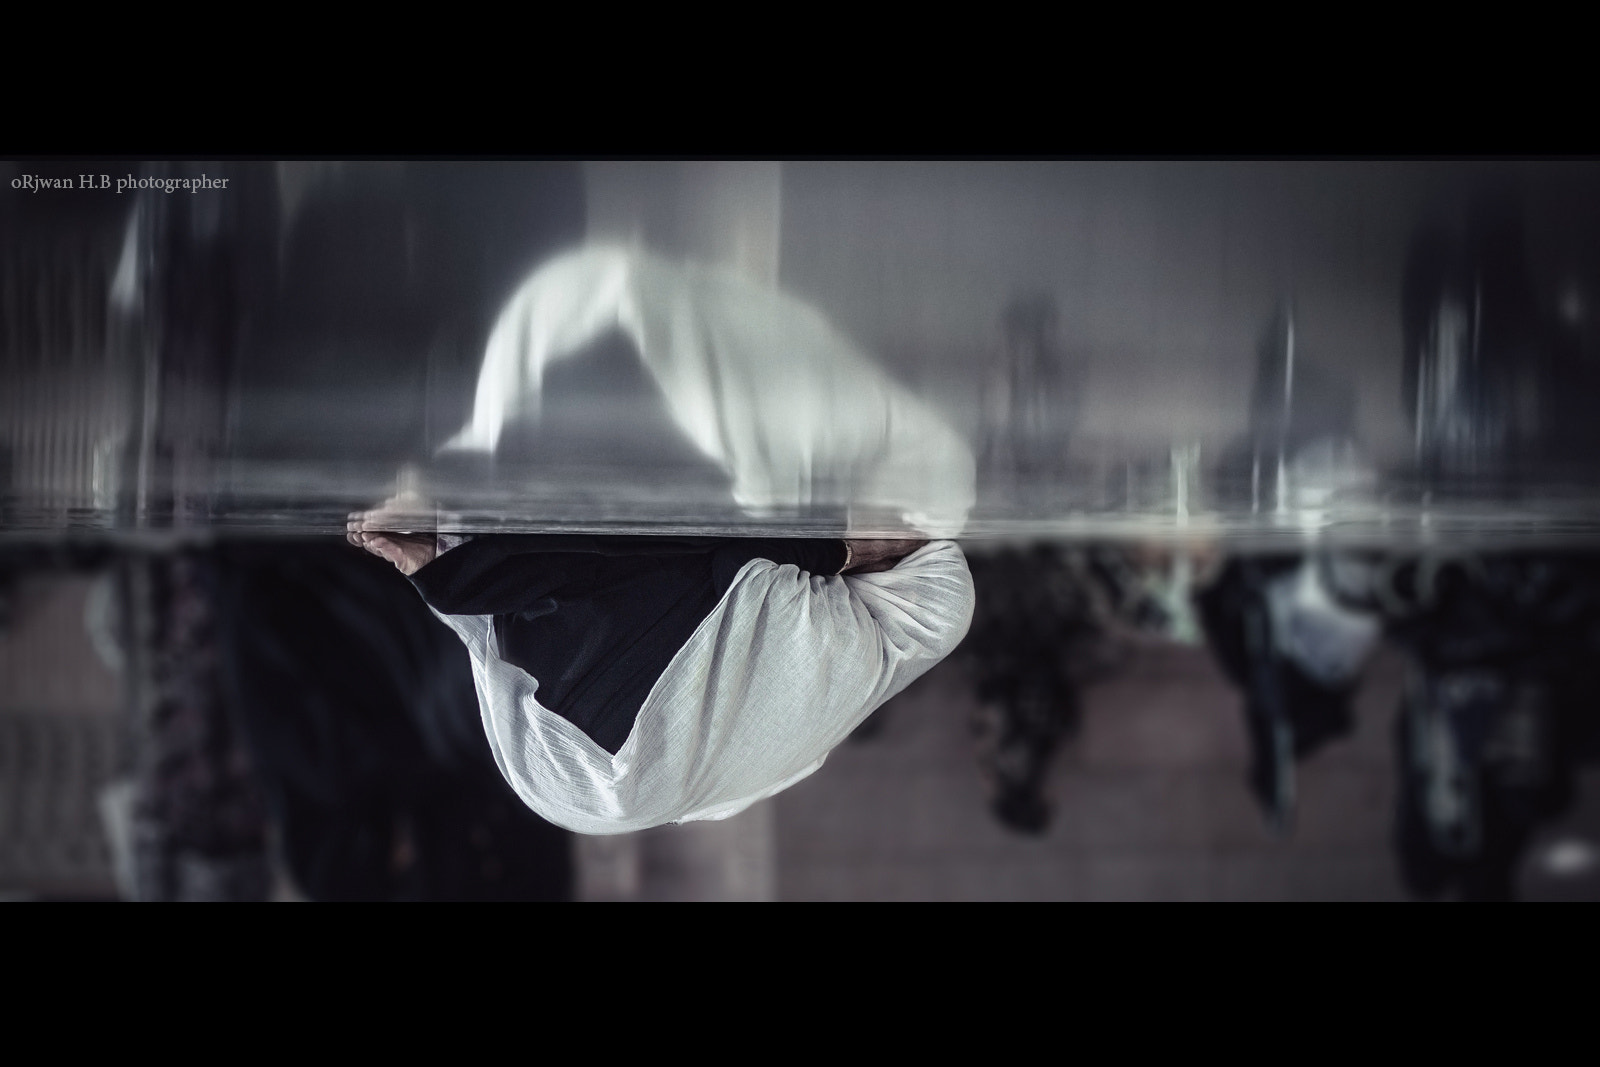 Photograph Closer To Allah  by Orjwana Almohammdi on 500px